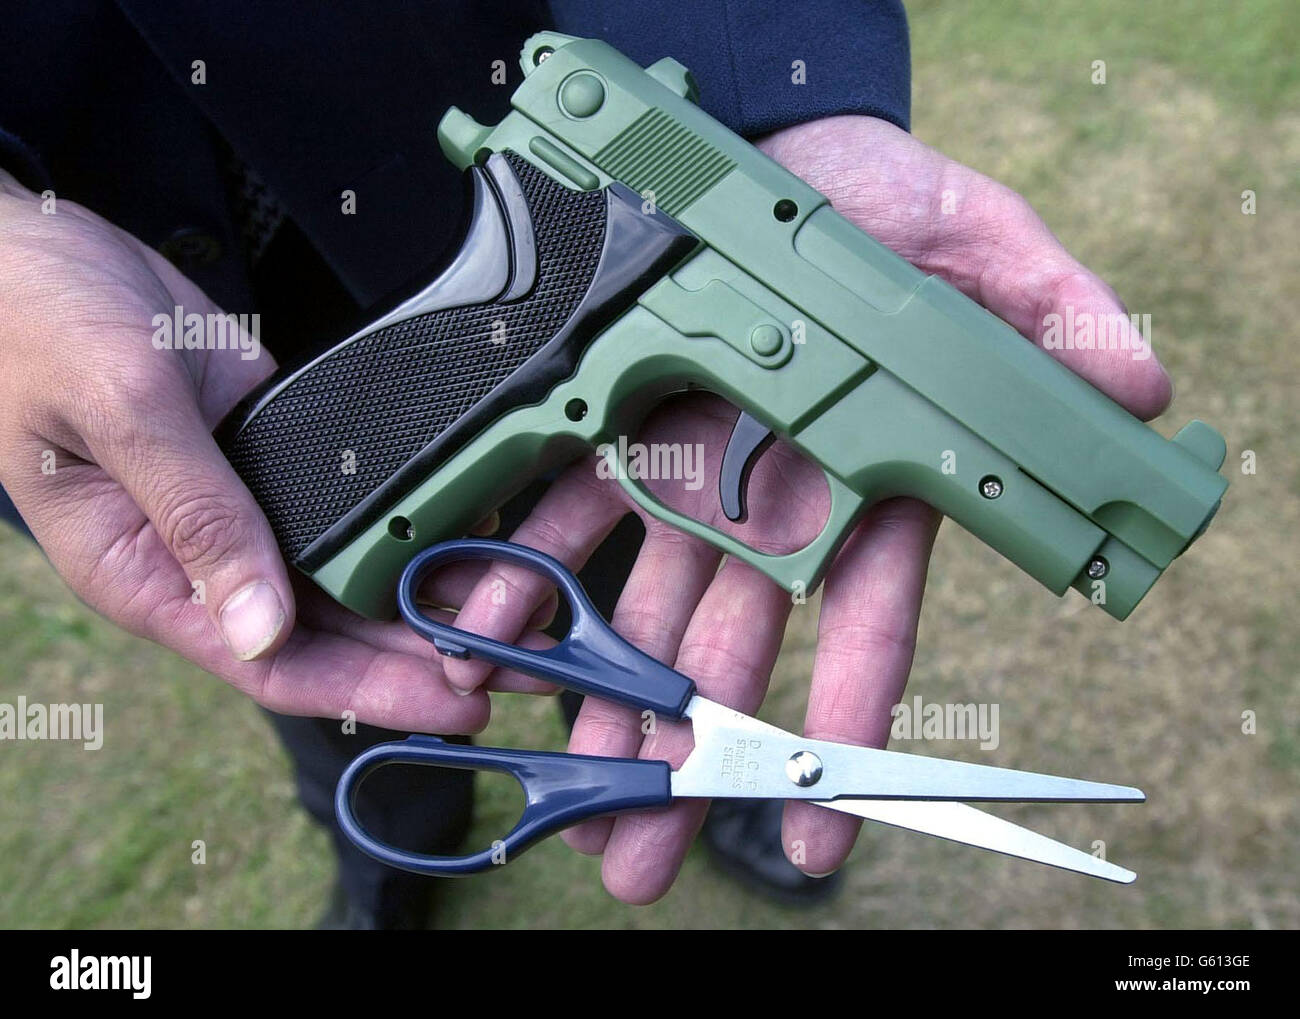 Smuggled weapons - Stock Image